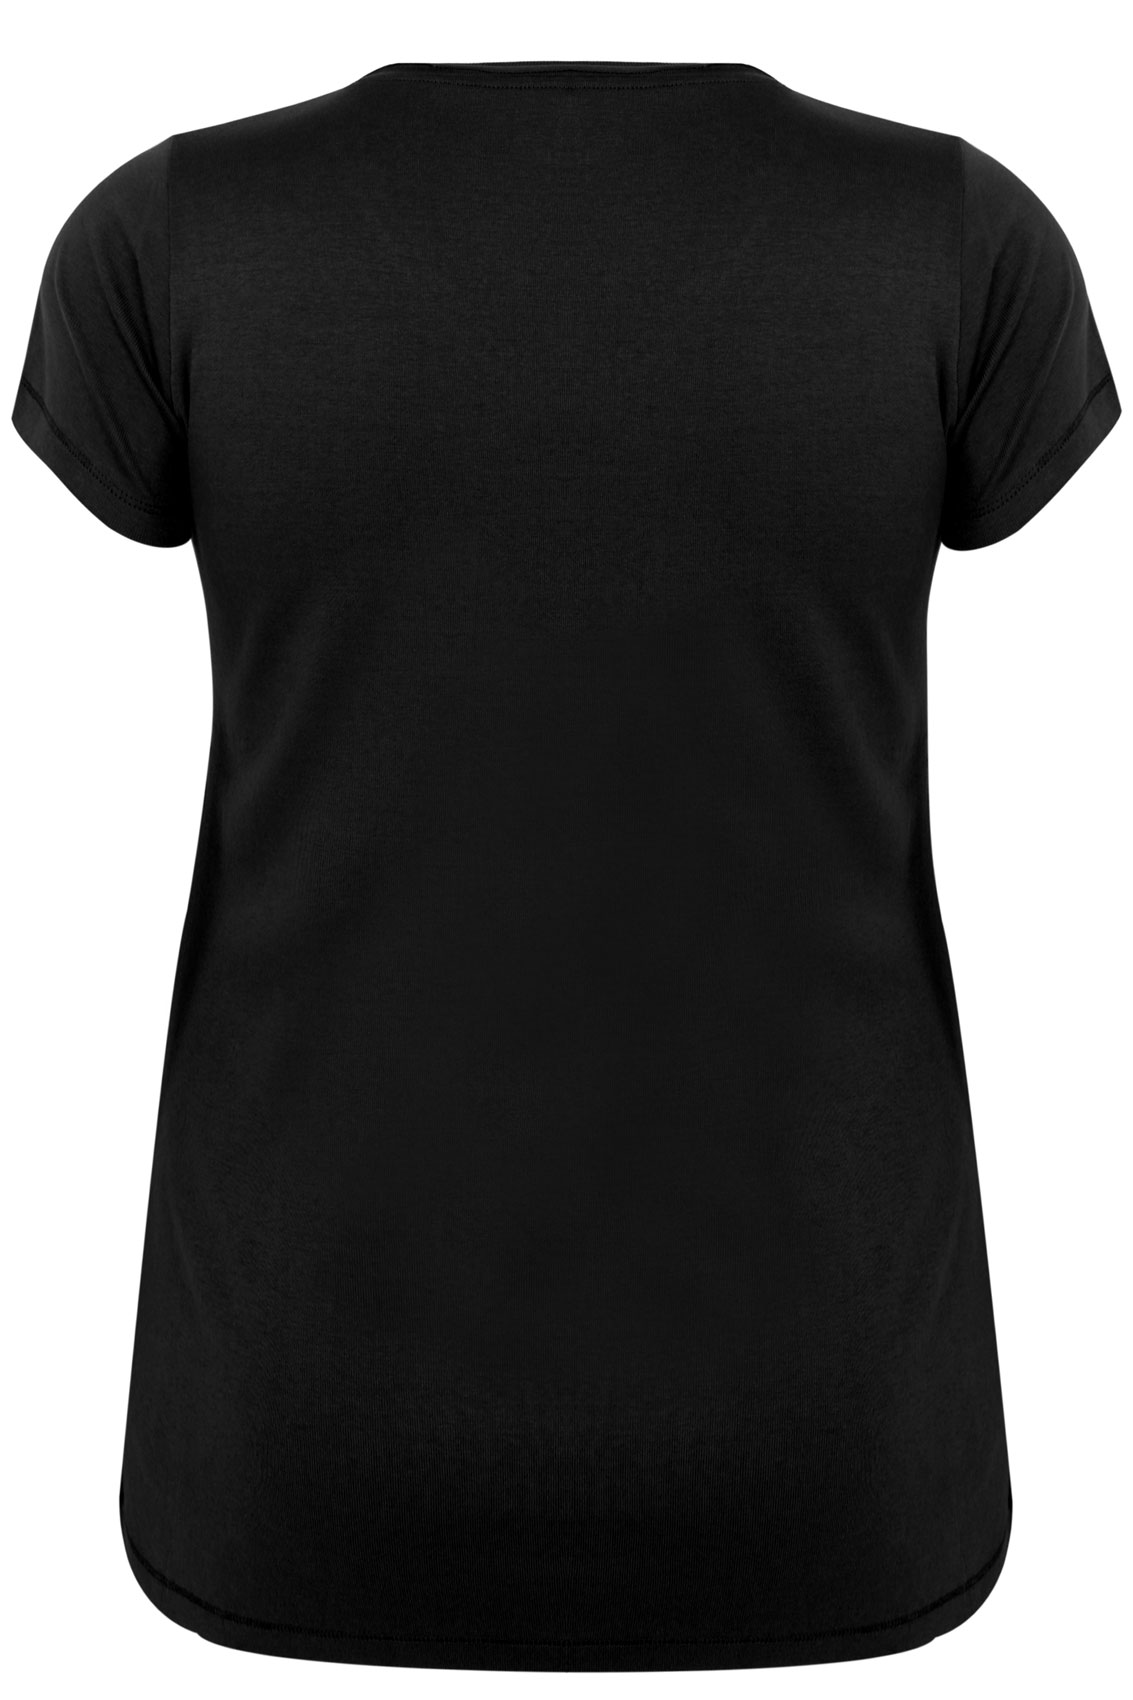 Black Short Sleeved V Neck Basic T Shirt Plus Size 16 To 36